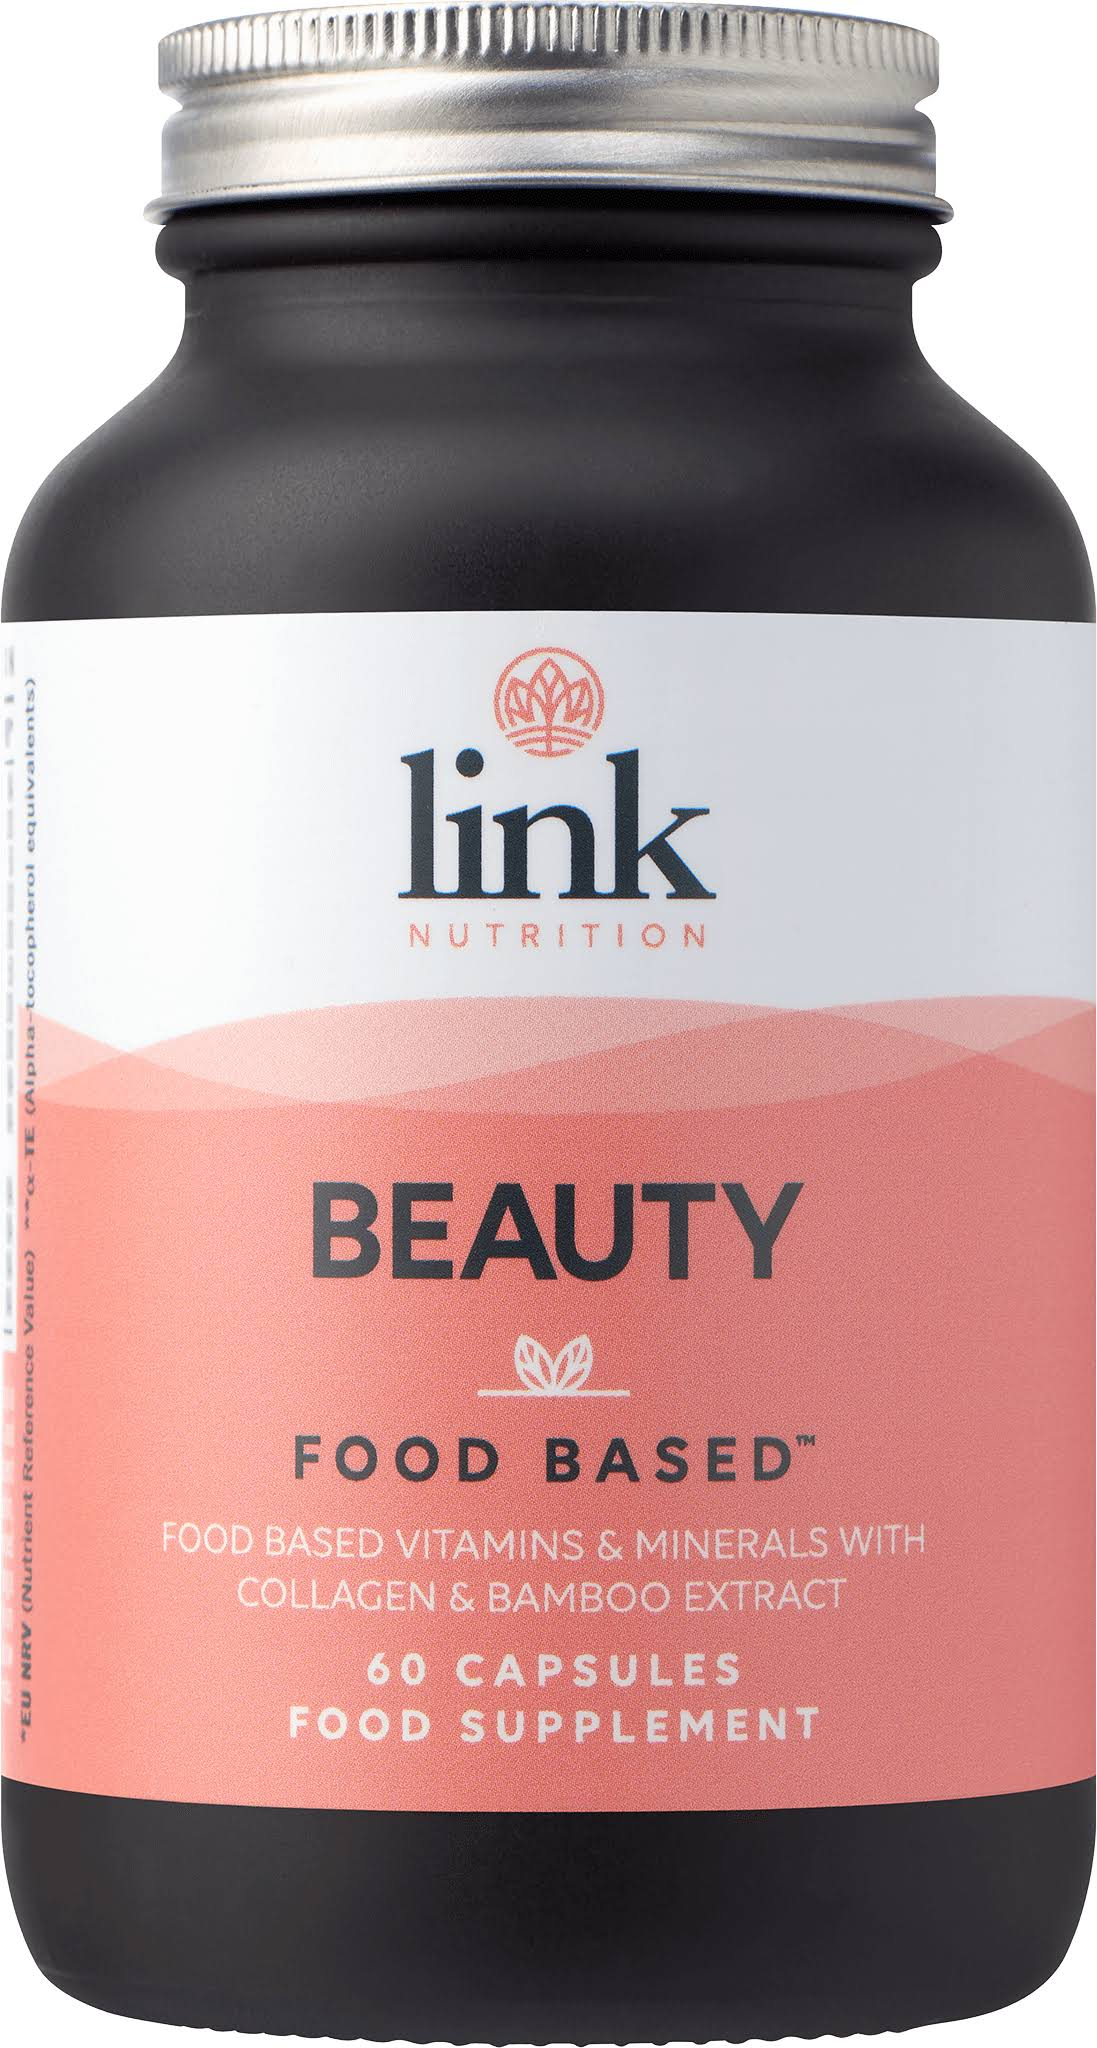 Link Nutrition - Beauty 60's